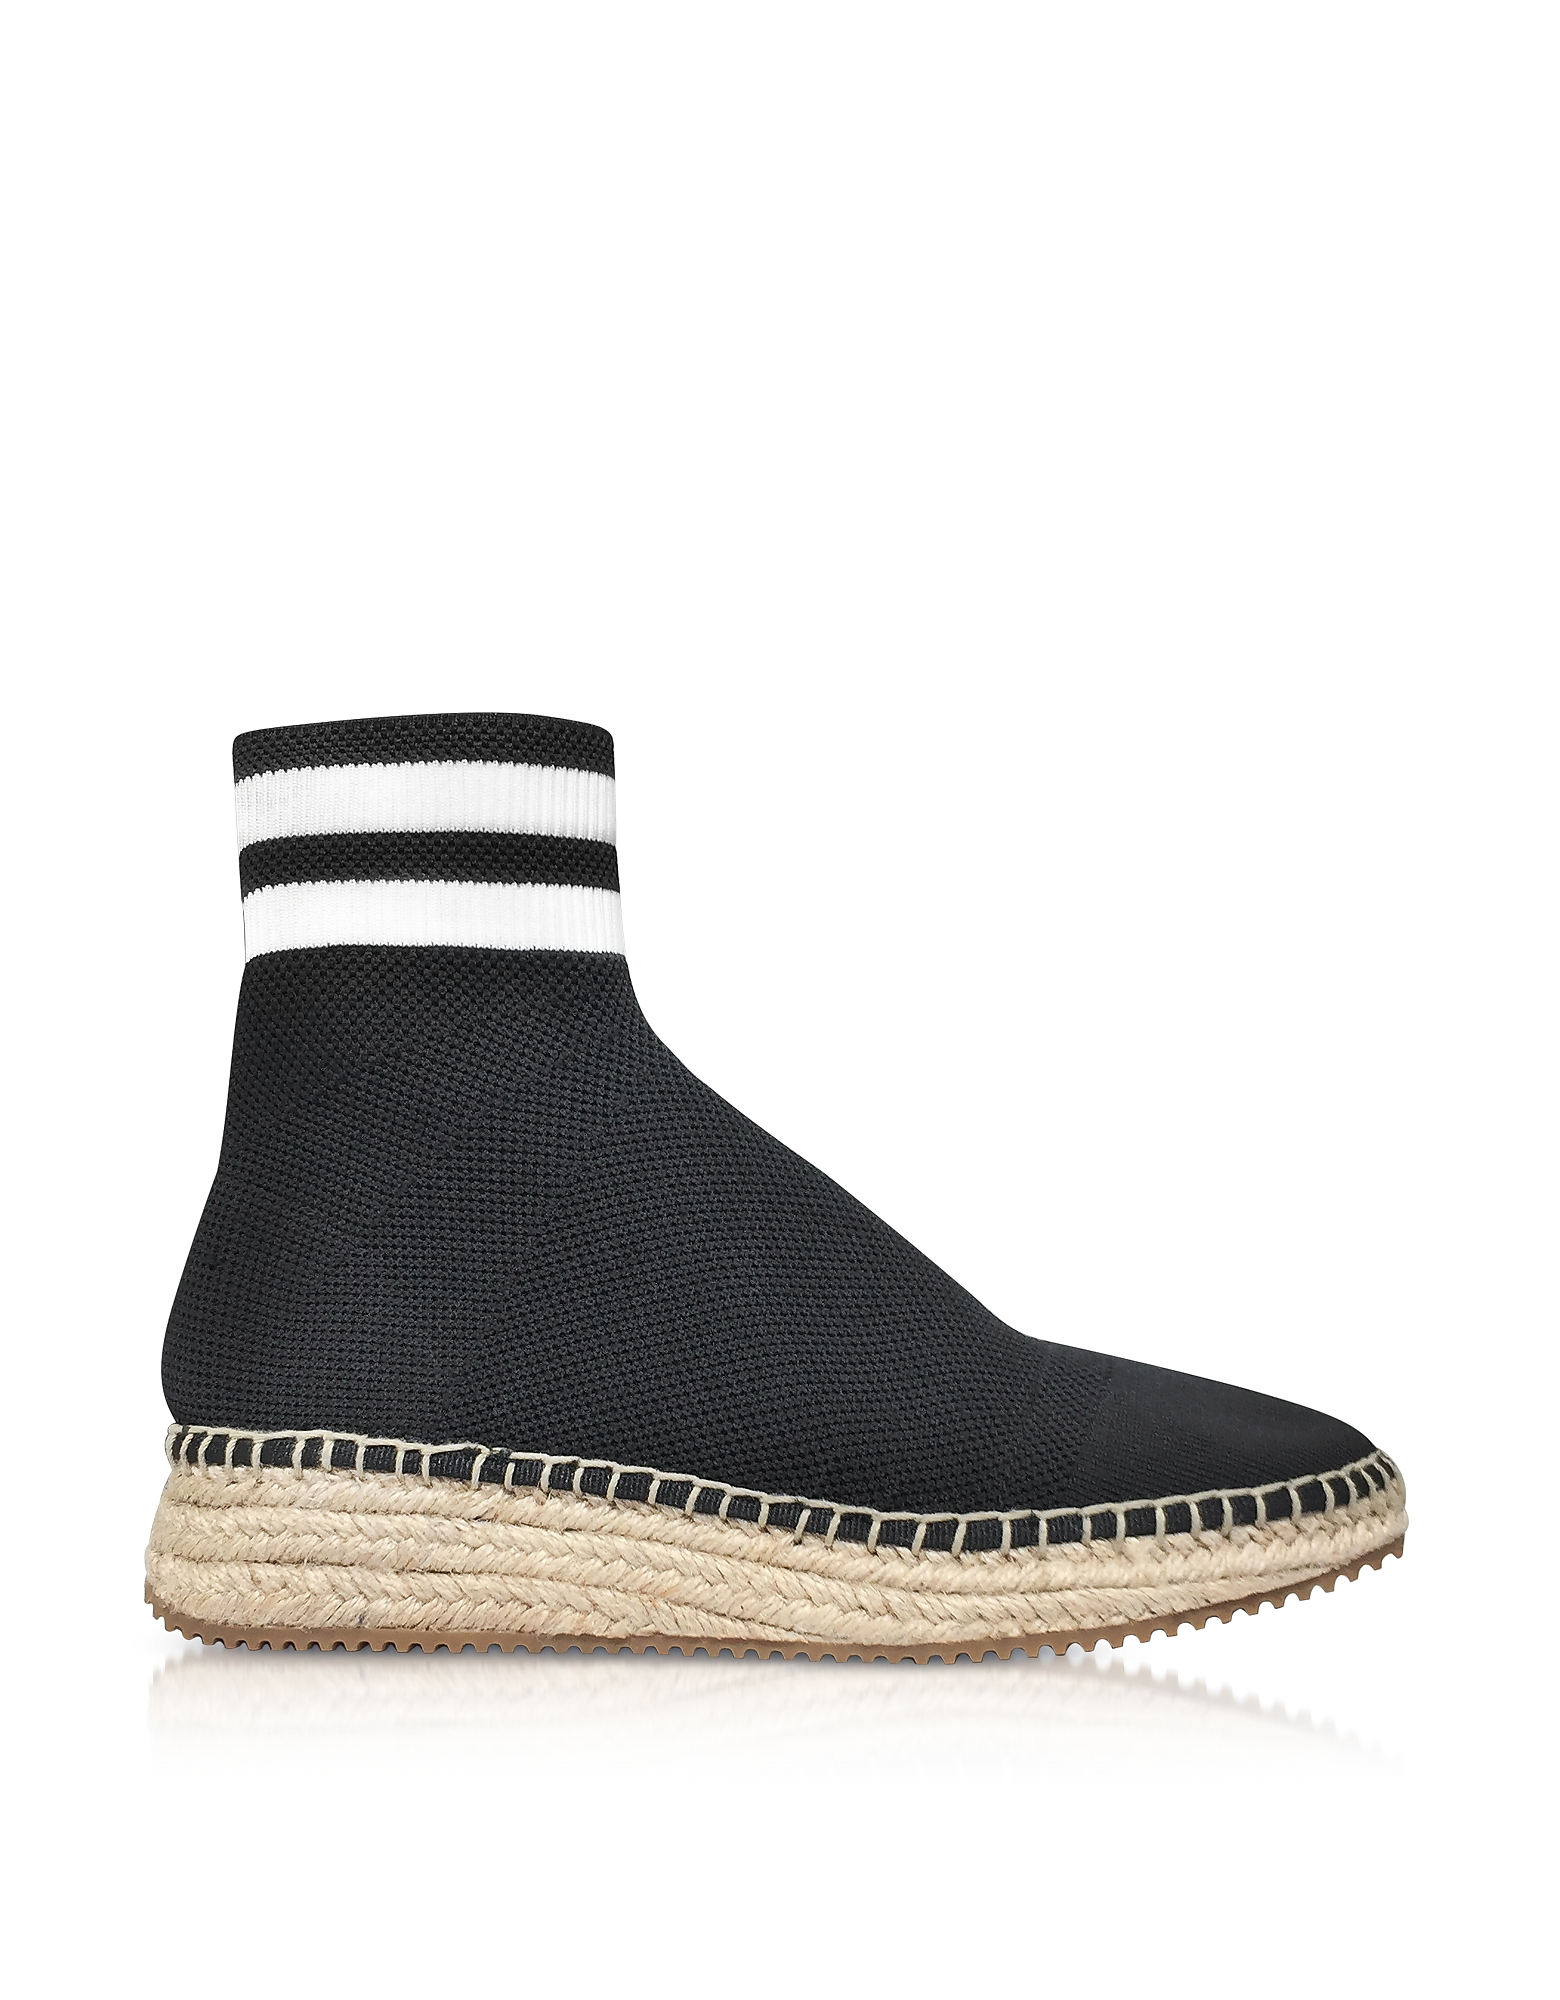 Alexander Wang Shoes, Dylan Black and White Knit High Top Sneakers w/Jute Sole